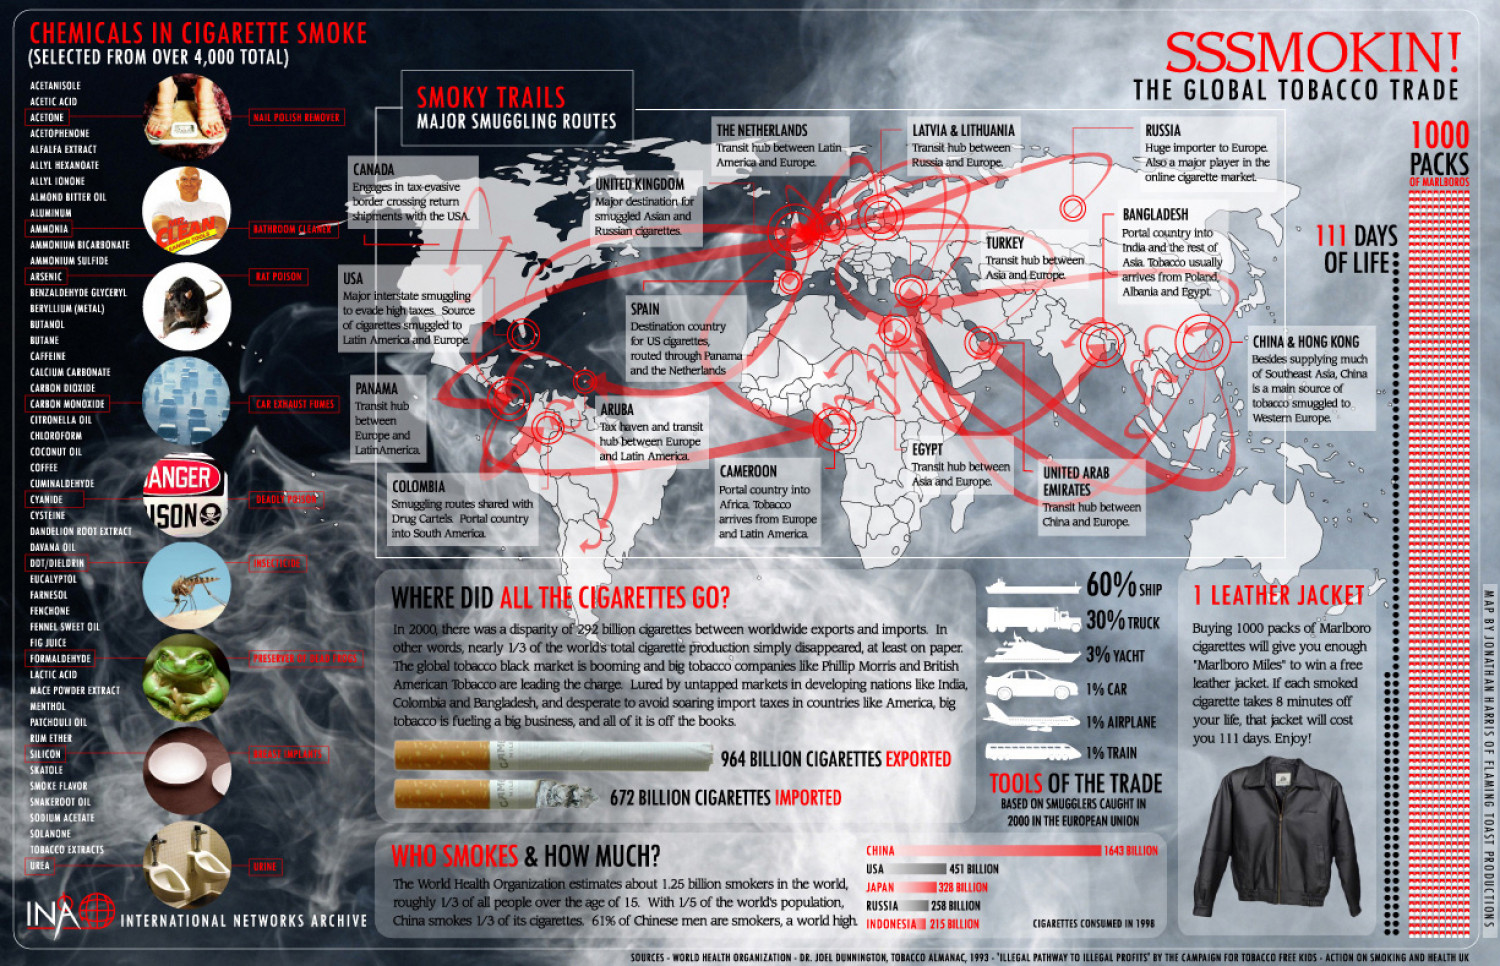 Chemicals in Cigarette Smoke Infographic